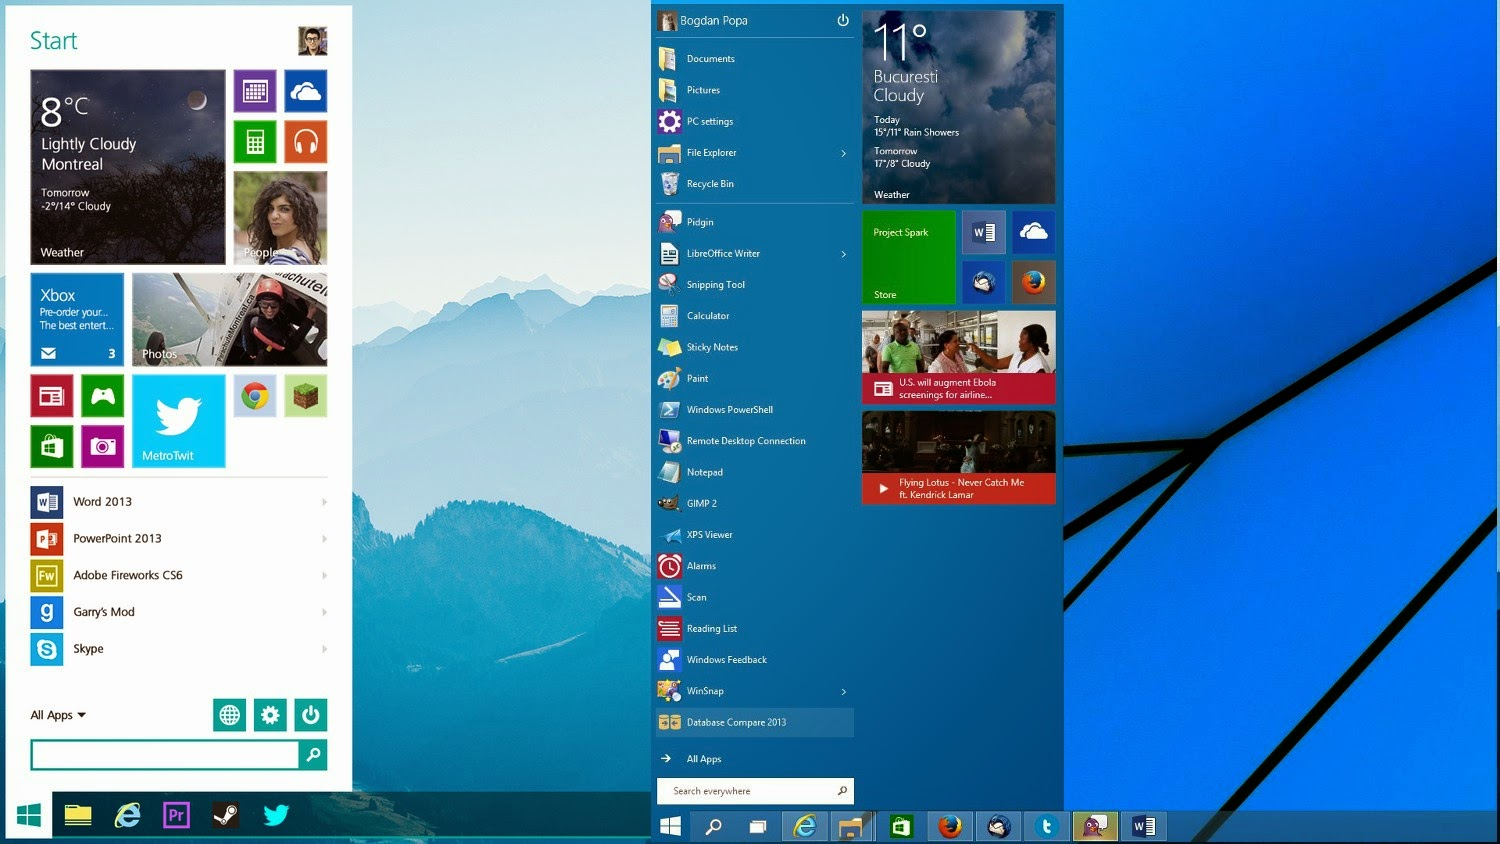 so similar to the windows 7, and also it has all features of windows 8 ...